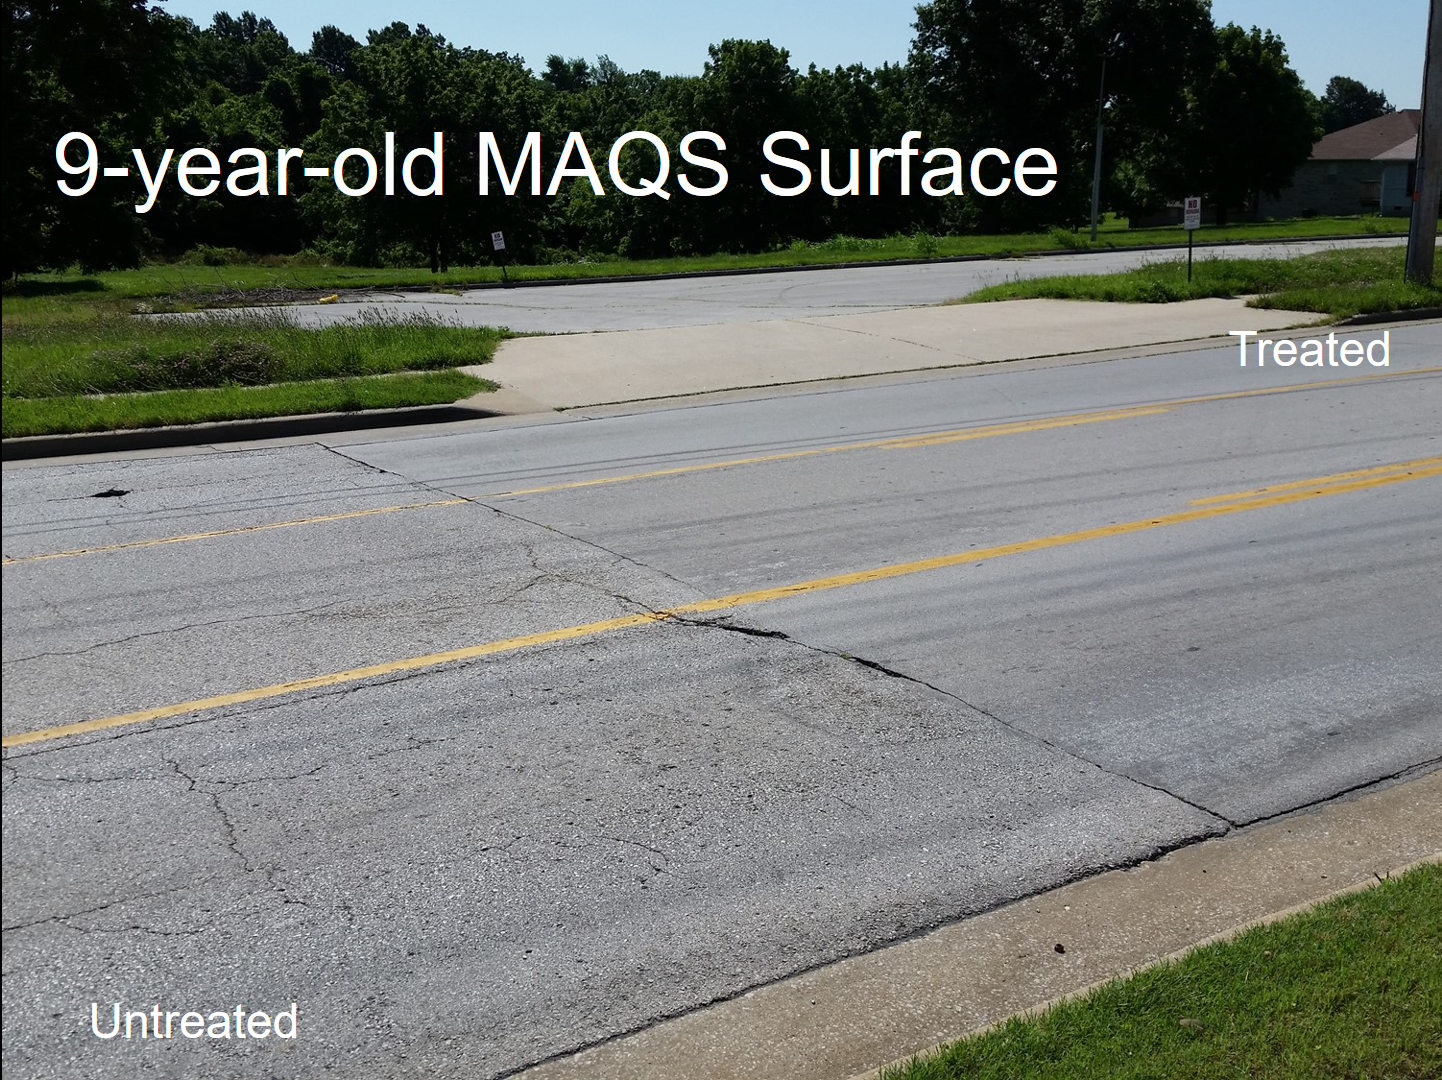 Comparing a 16 year-old asphalt surface with a 9 year-old MAQS surface